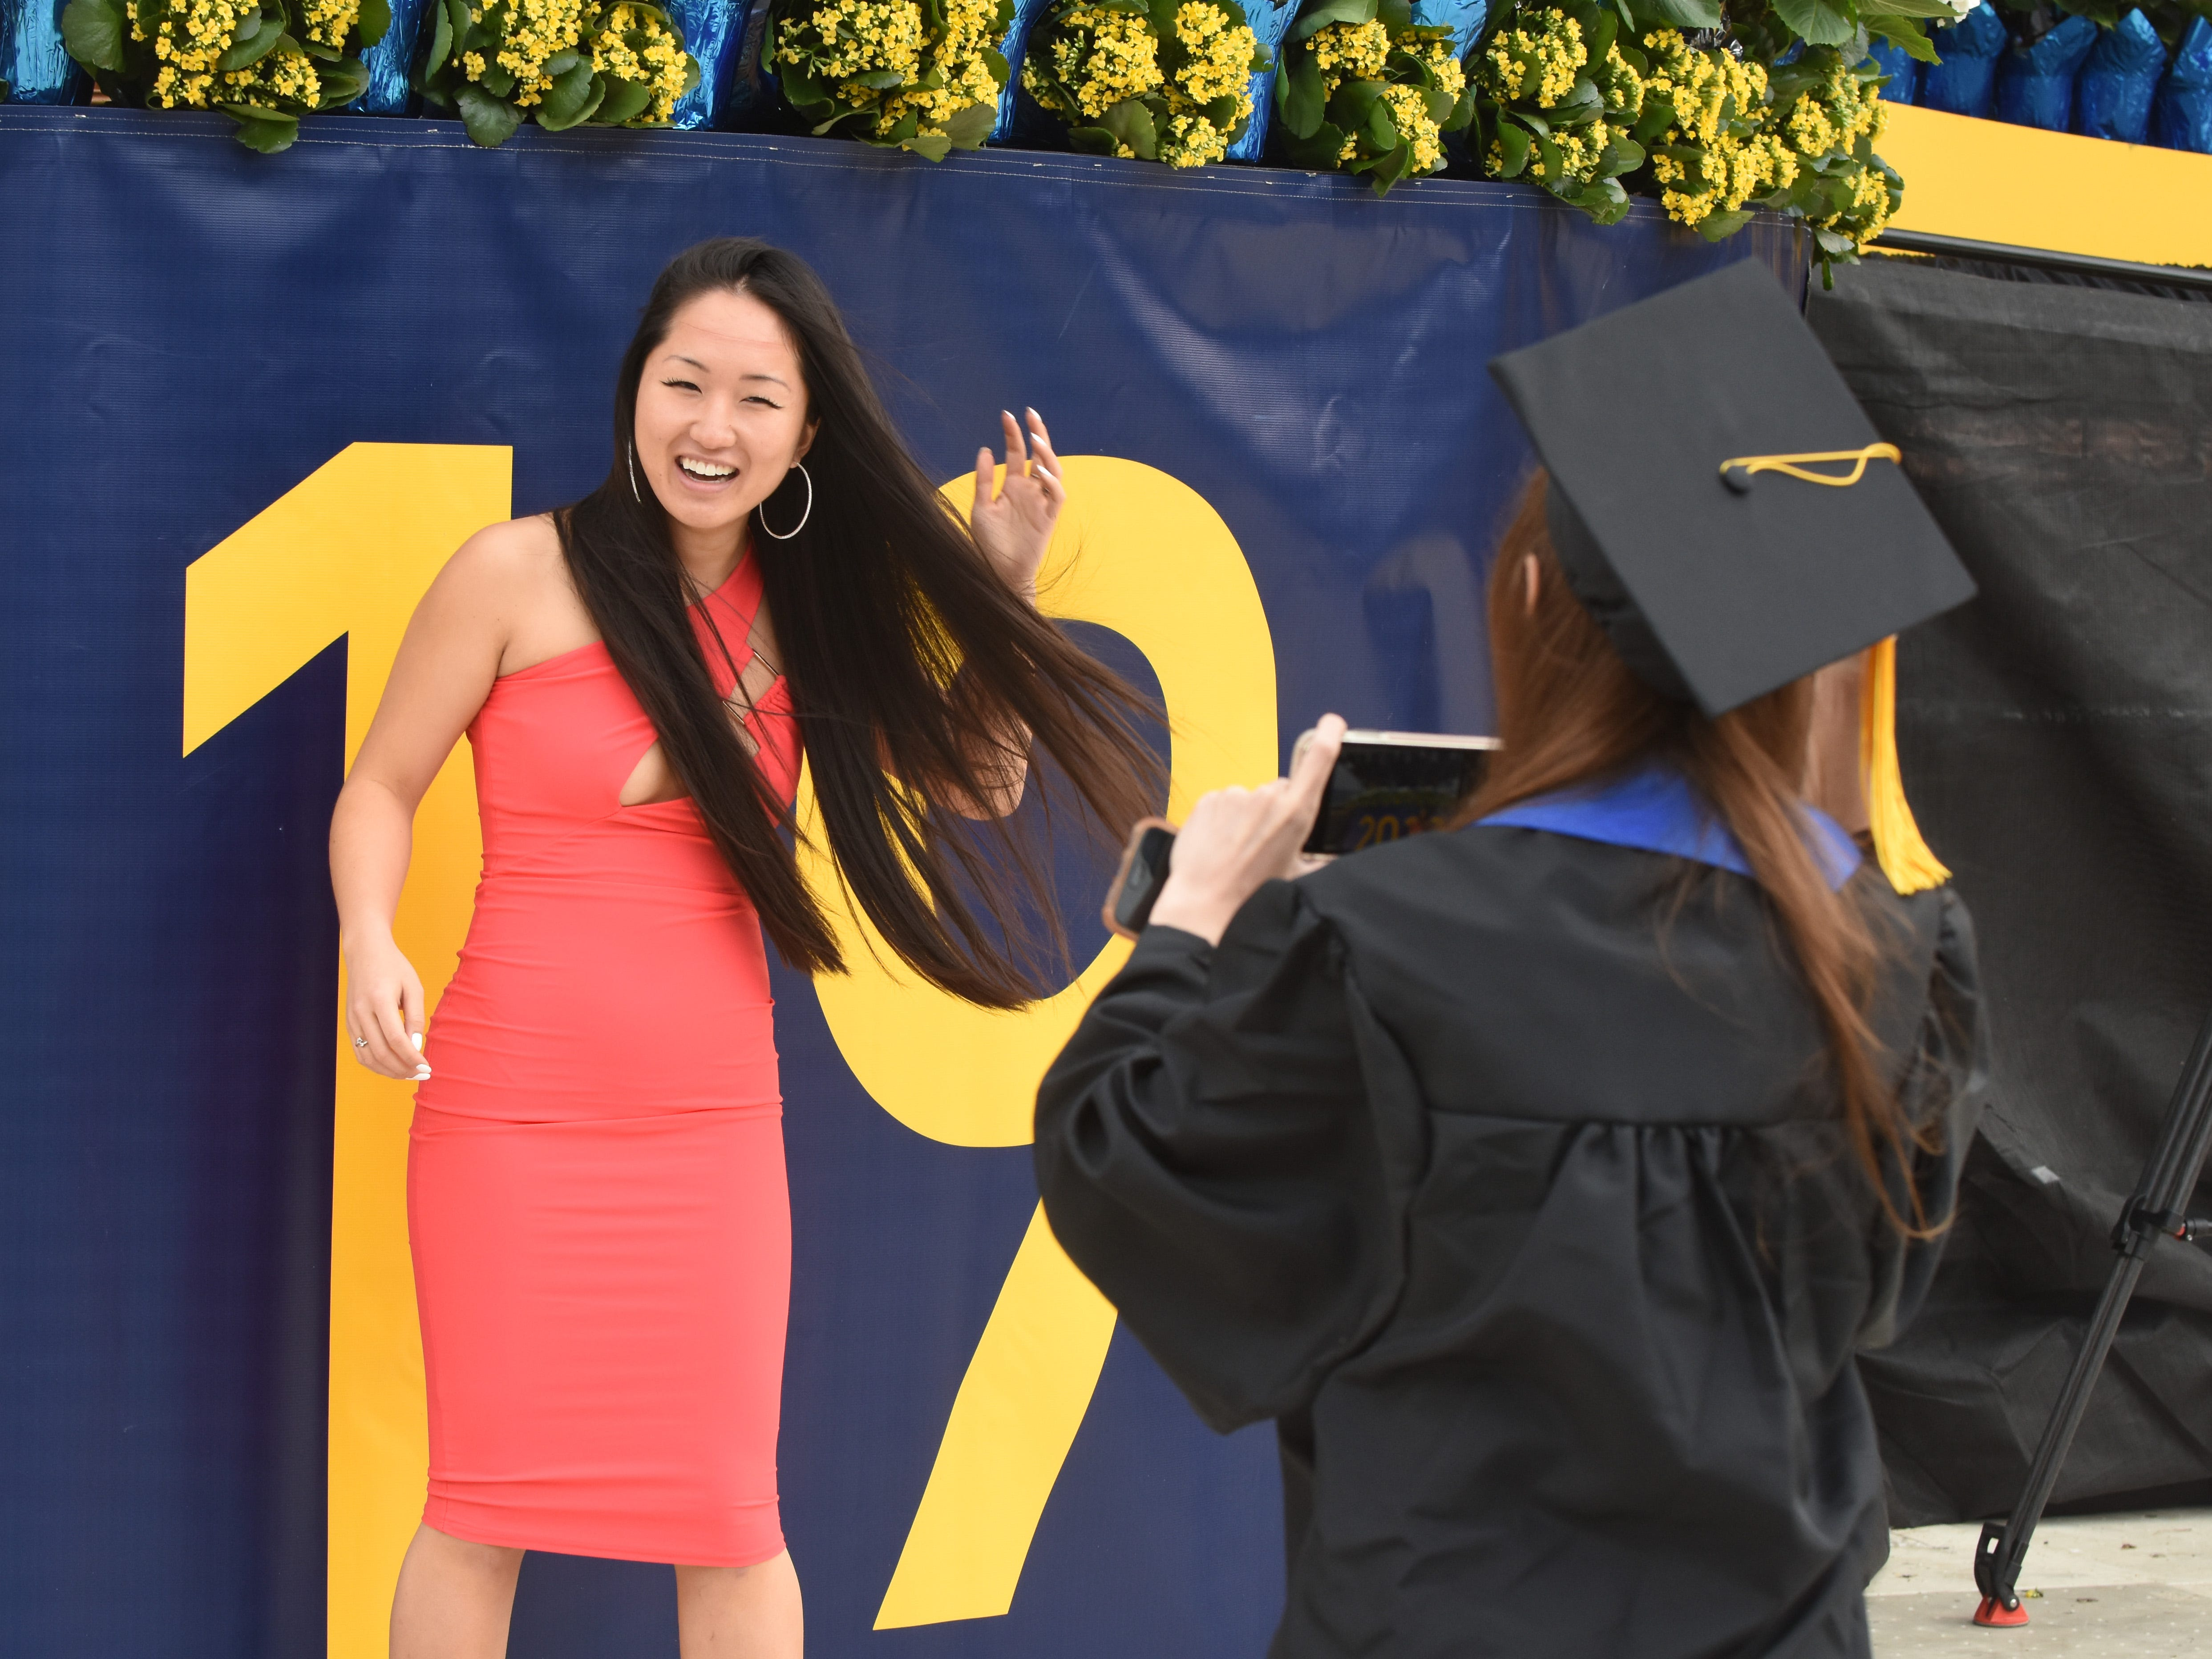 University of Michigan student Martina Cholagh (right) takes a picture of Tatiana Yugay in a bright pink dress she was wearing under her graduation gown during commencement exercises in Ann Arbor.